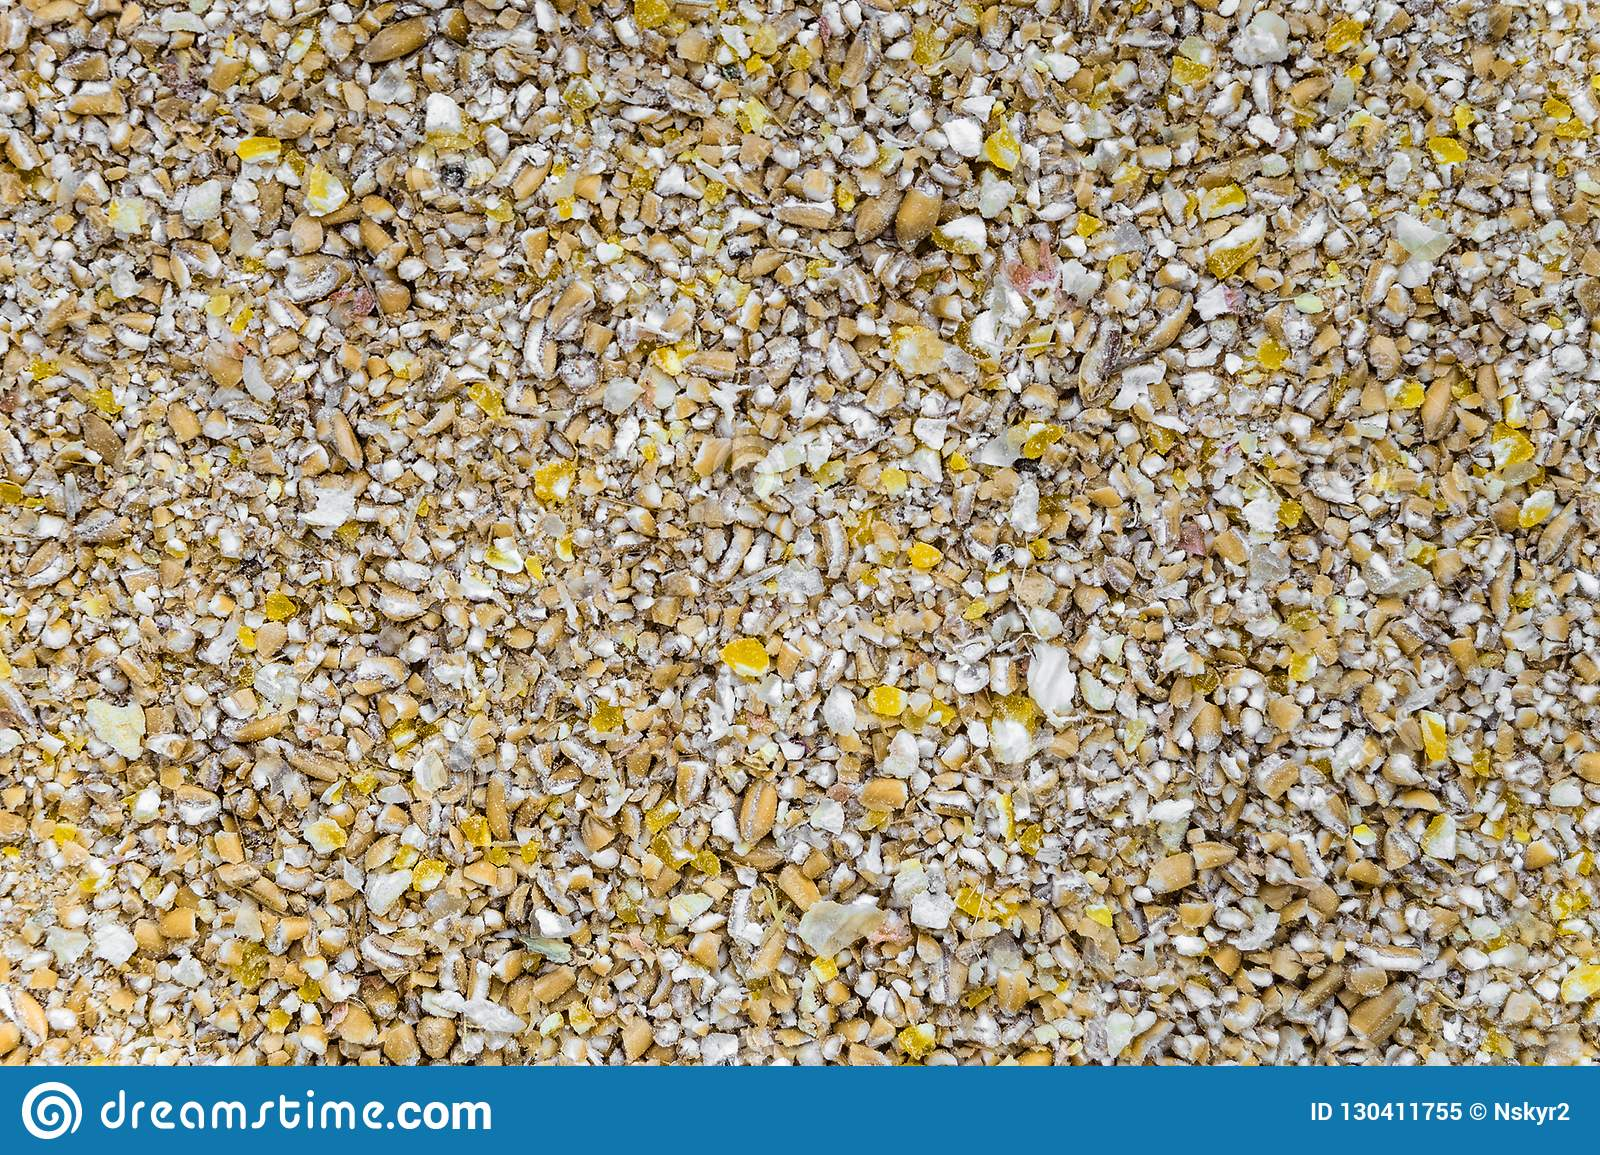 Crushed grains of dried corn and wheat